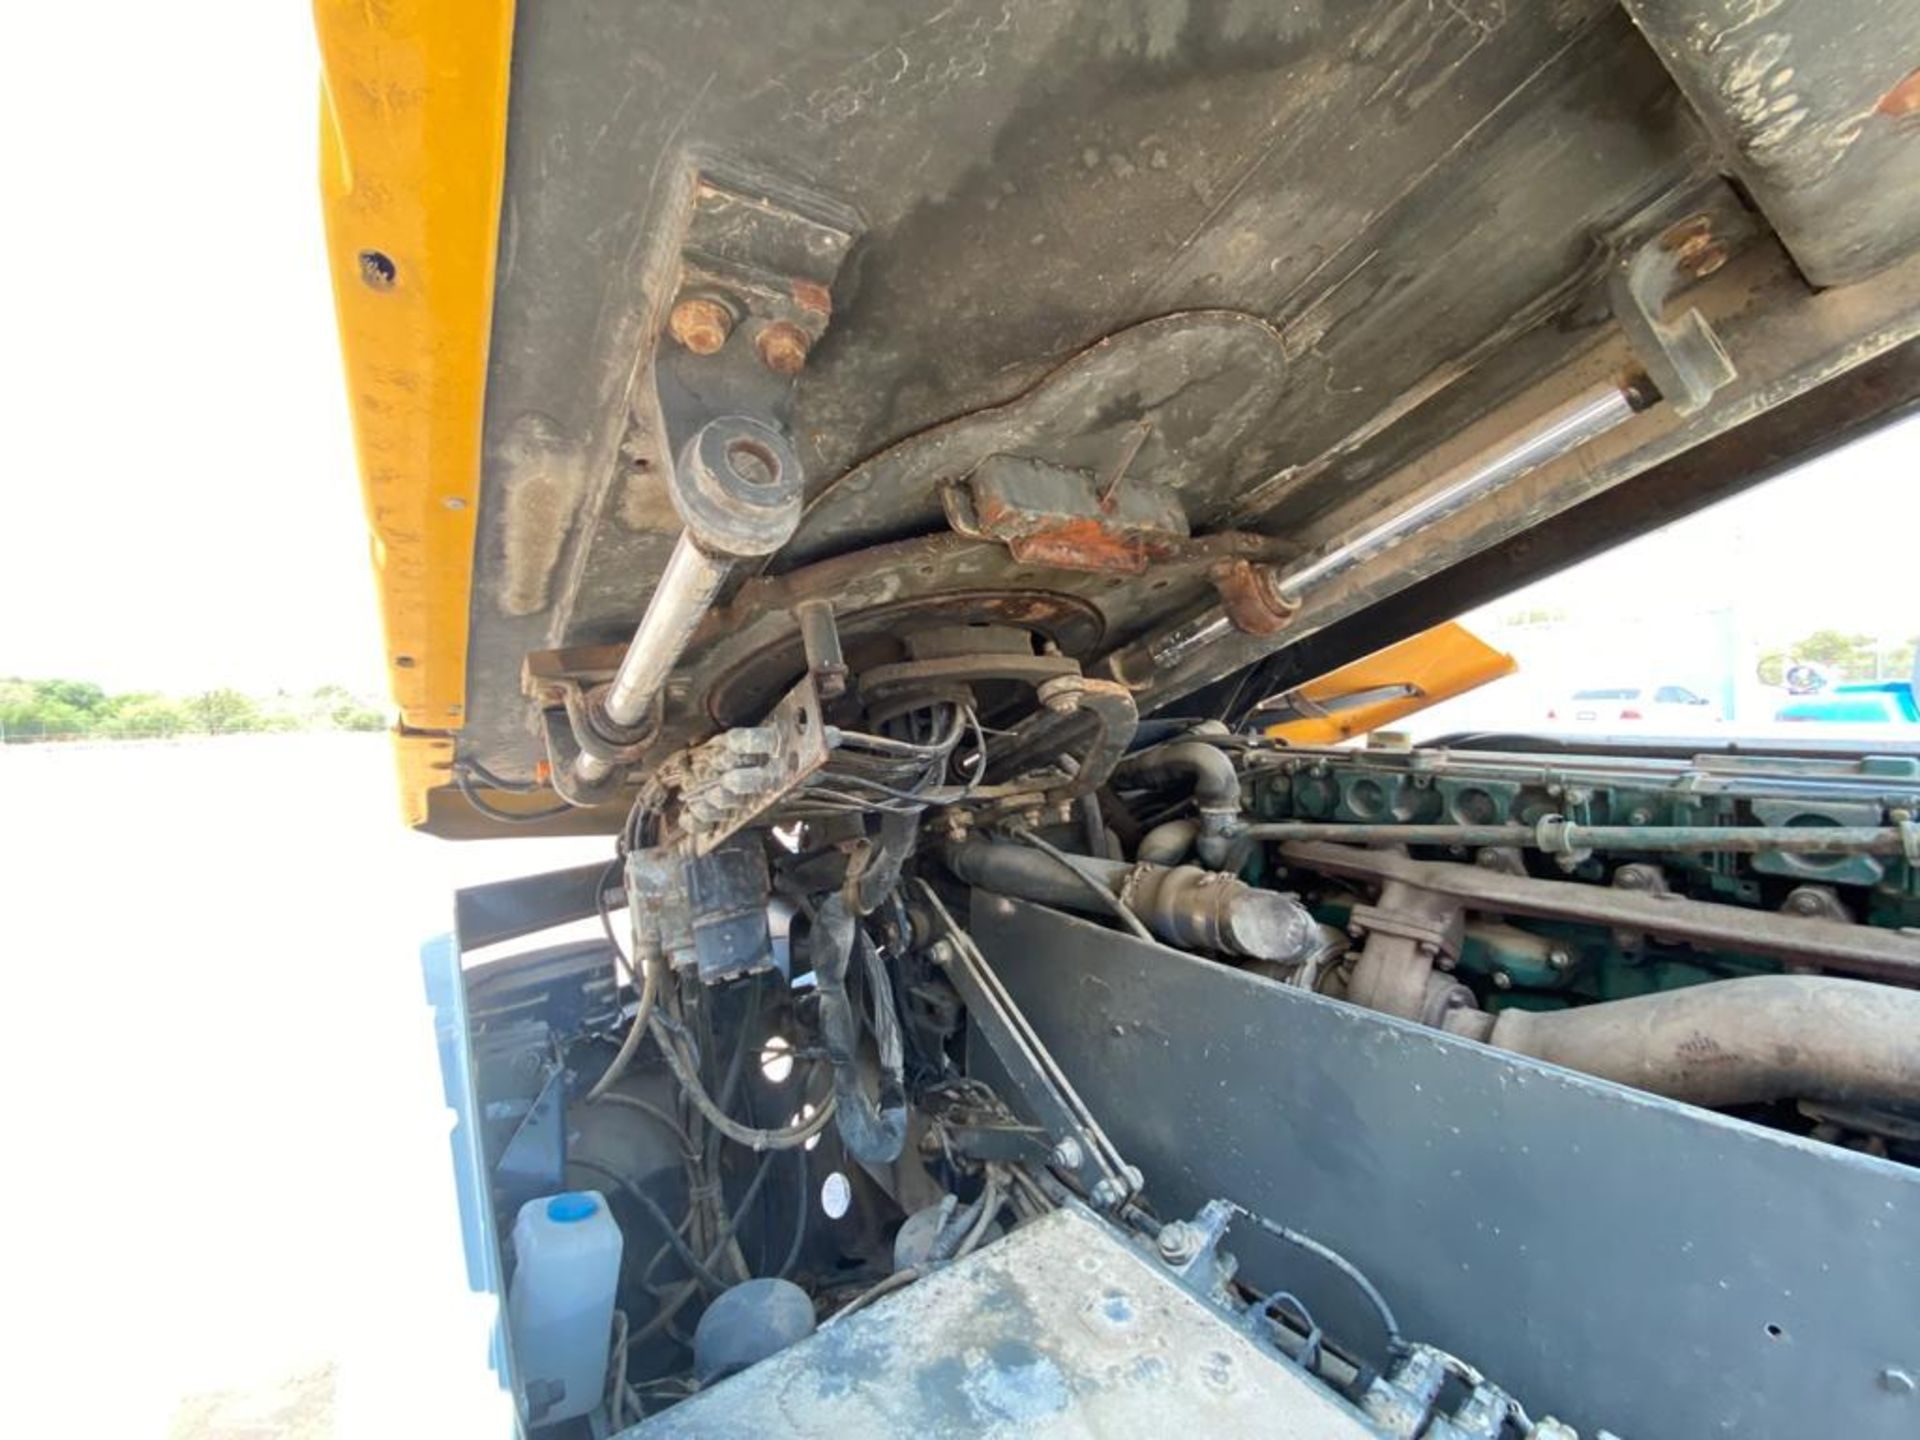 Terberg Capacity 2002 Terminal Tractor, automatic transmission, with Volvo motor - Image 37 of 57